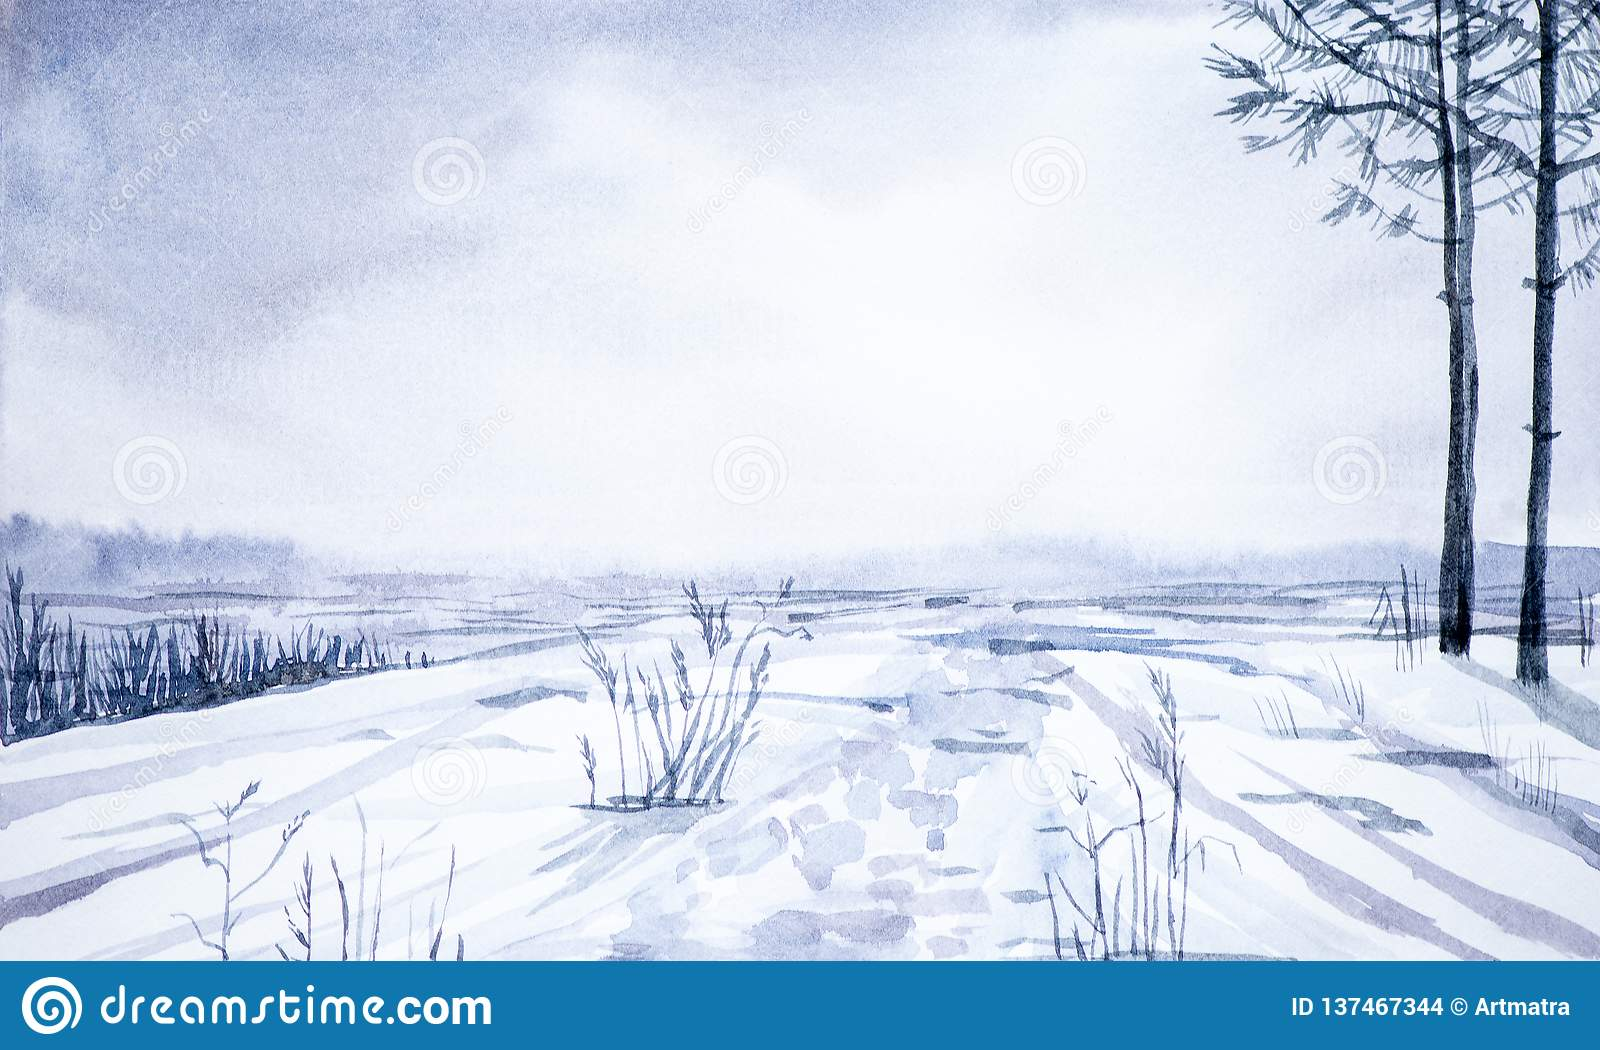 Winter landscape of forest and snowy field. Hand drawn watercolor illustration